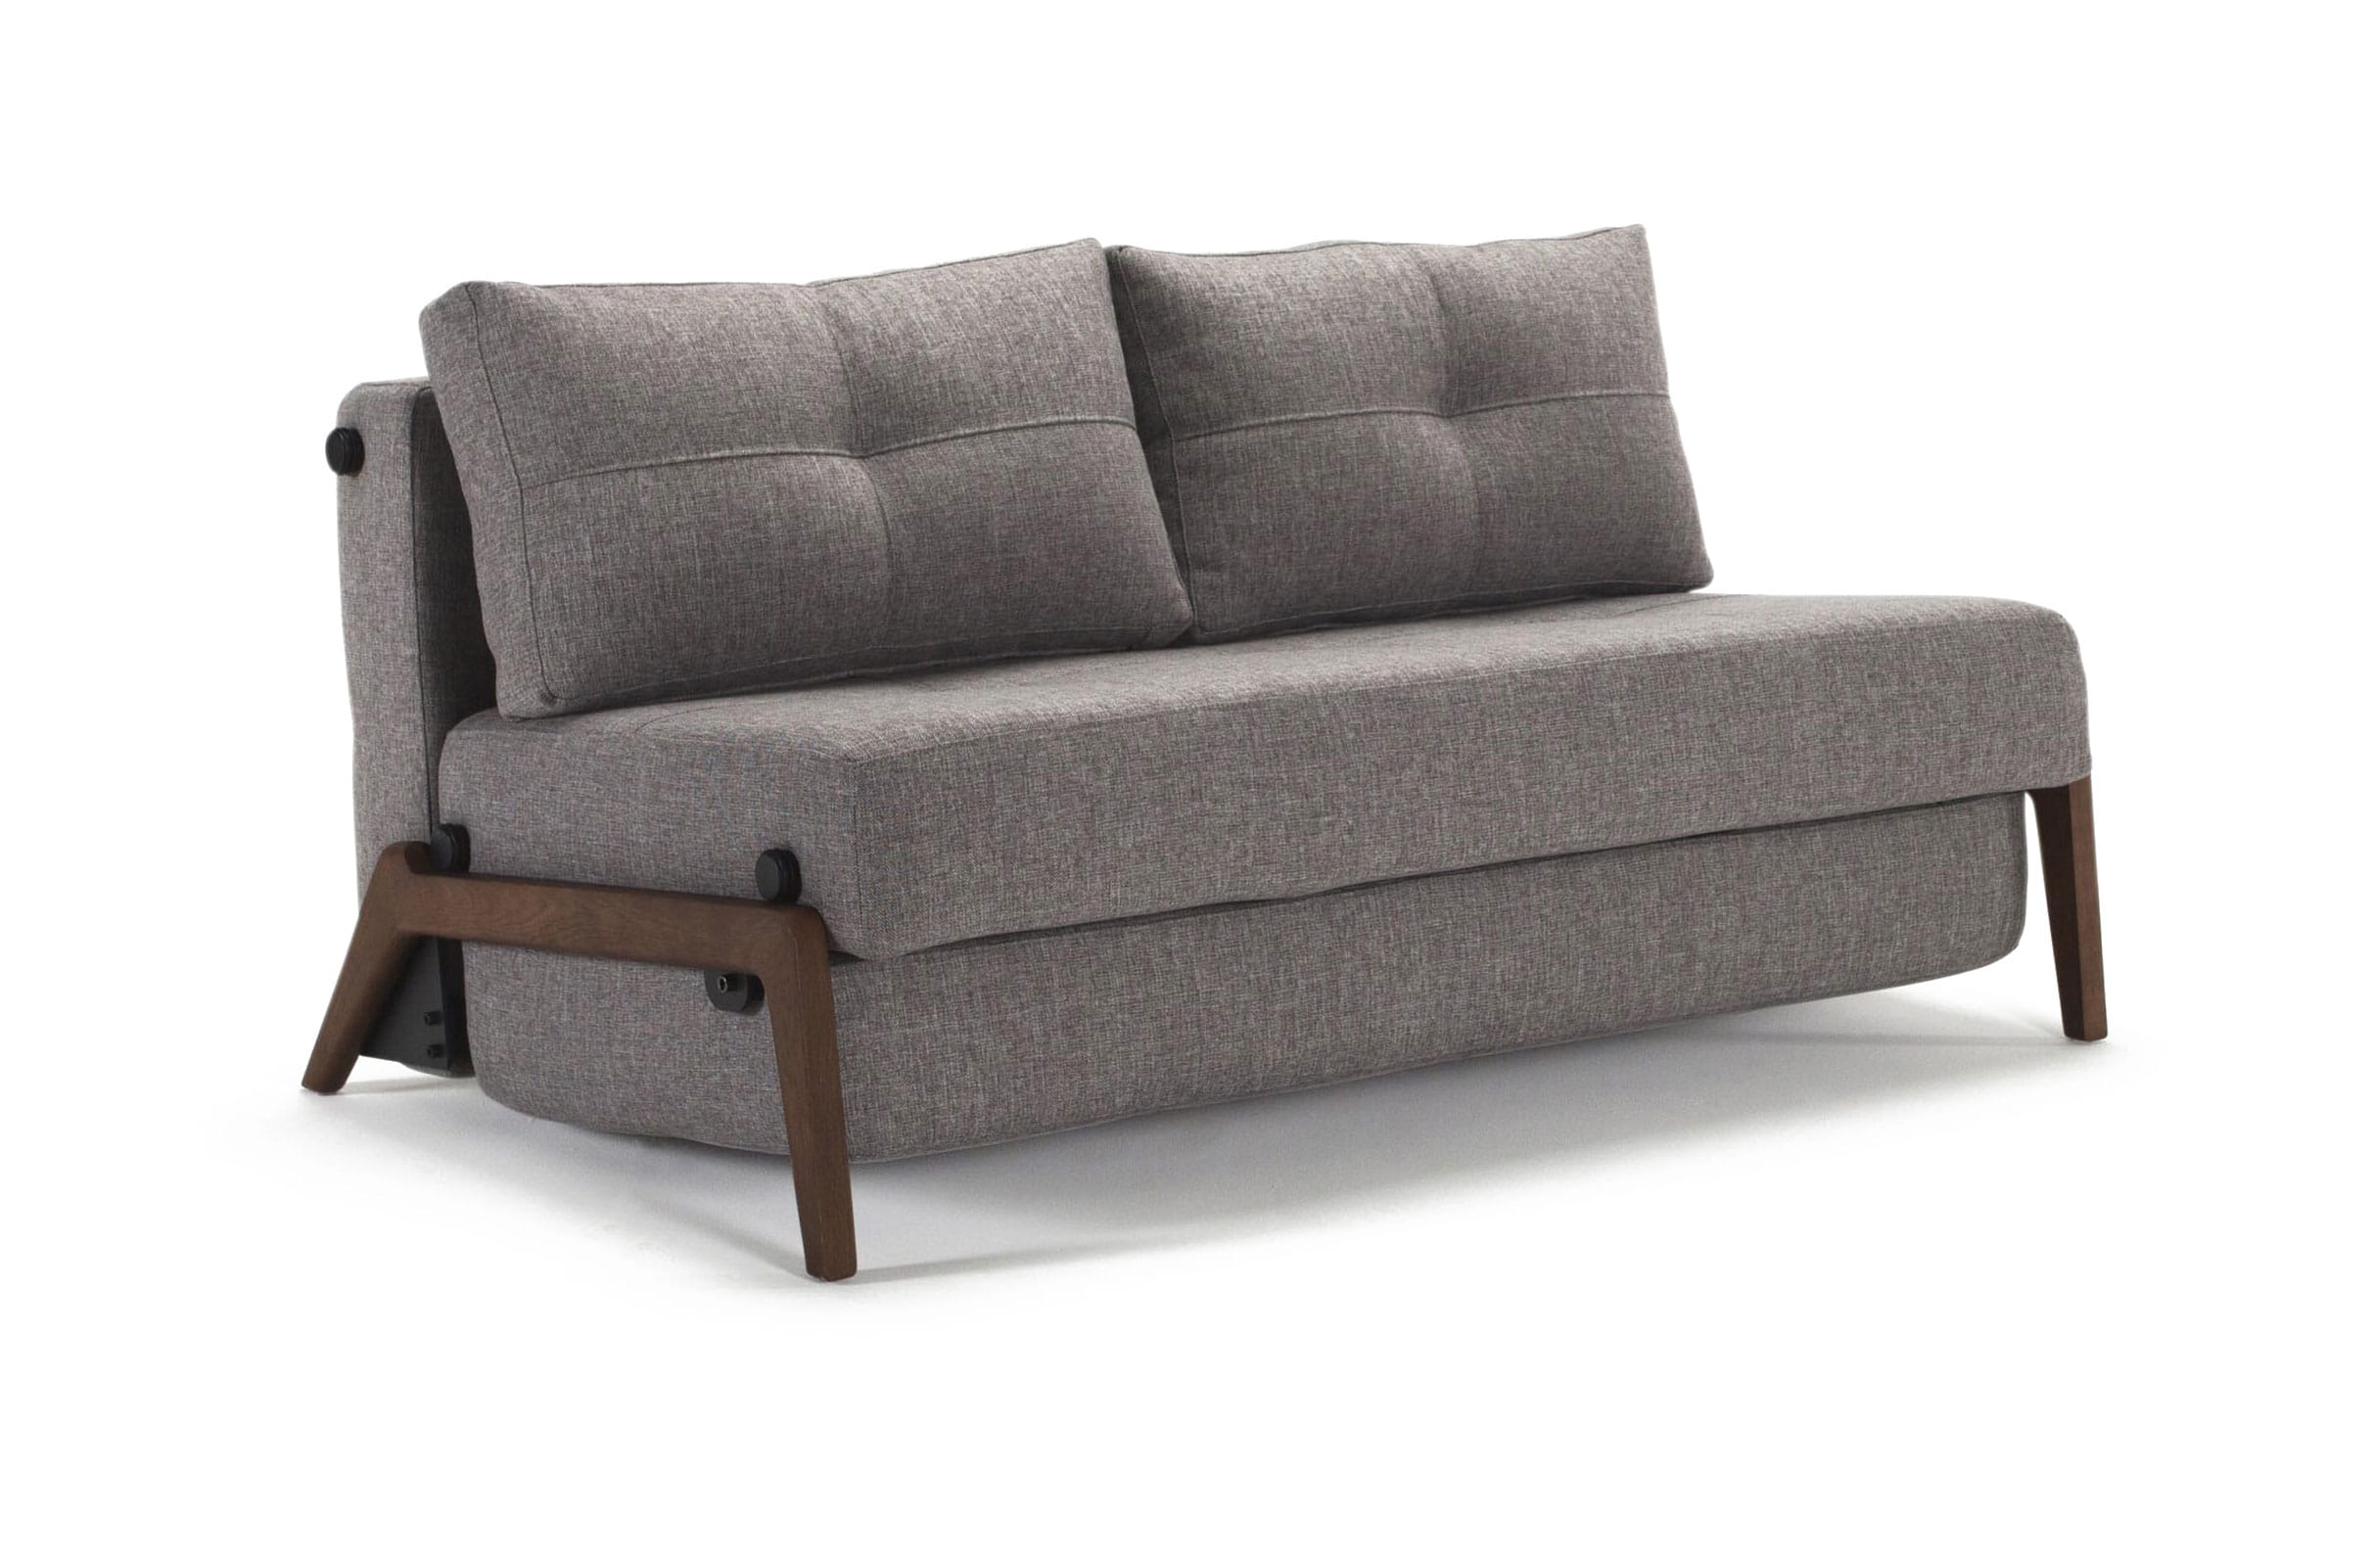 Cubed deluxe sofa bed queen size mixed dance gray by for Sofa queen bed